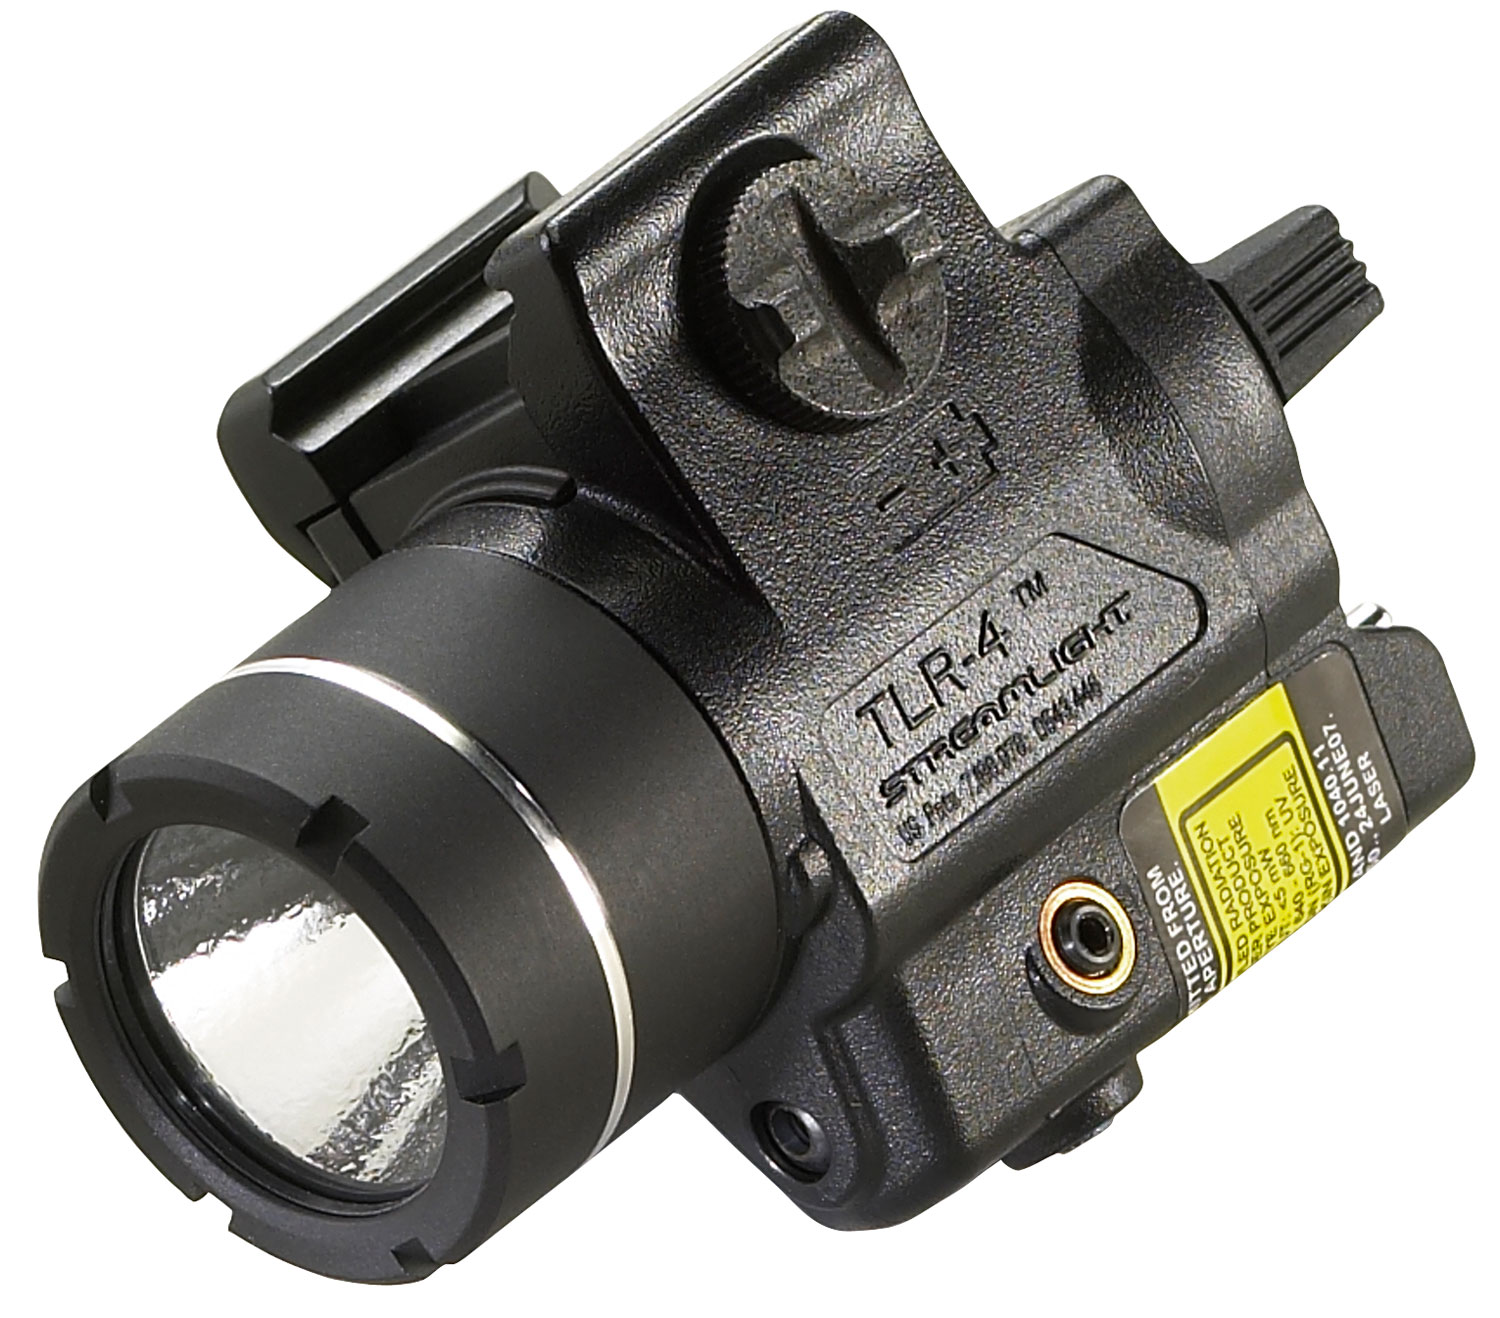 STL 69241  TLR4  WEAPONLIGHT W/LASER